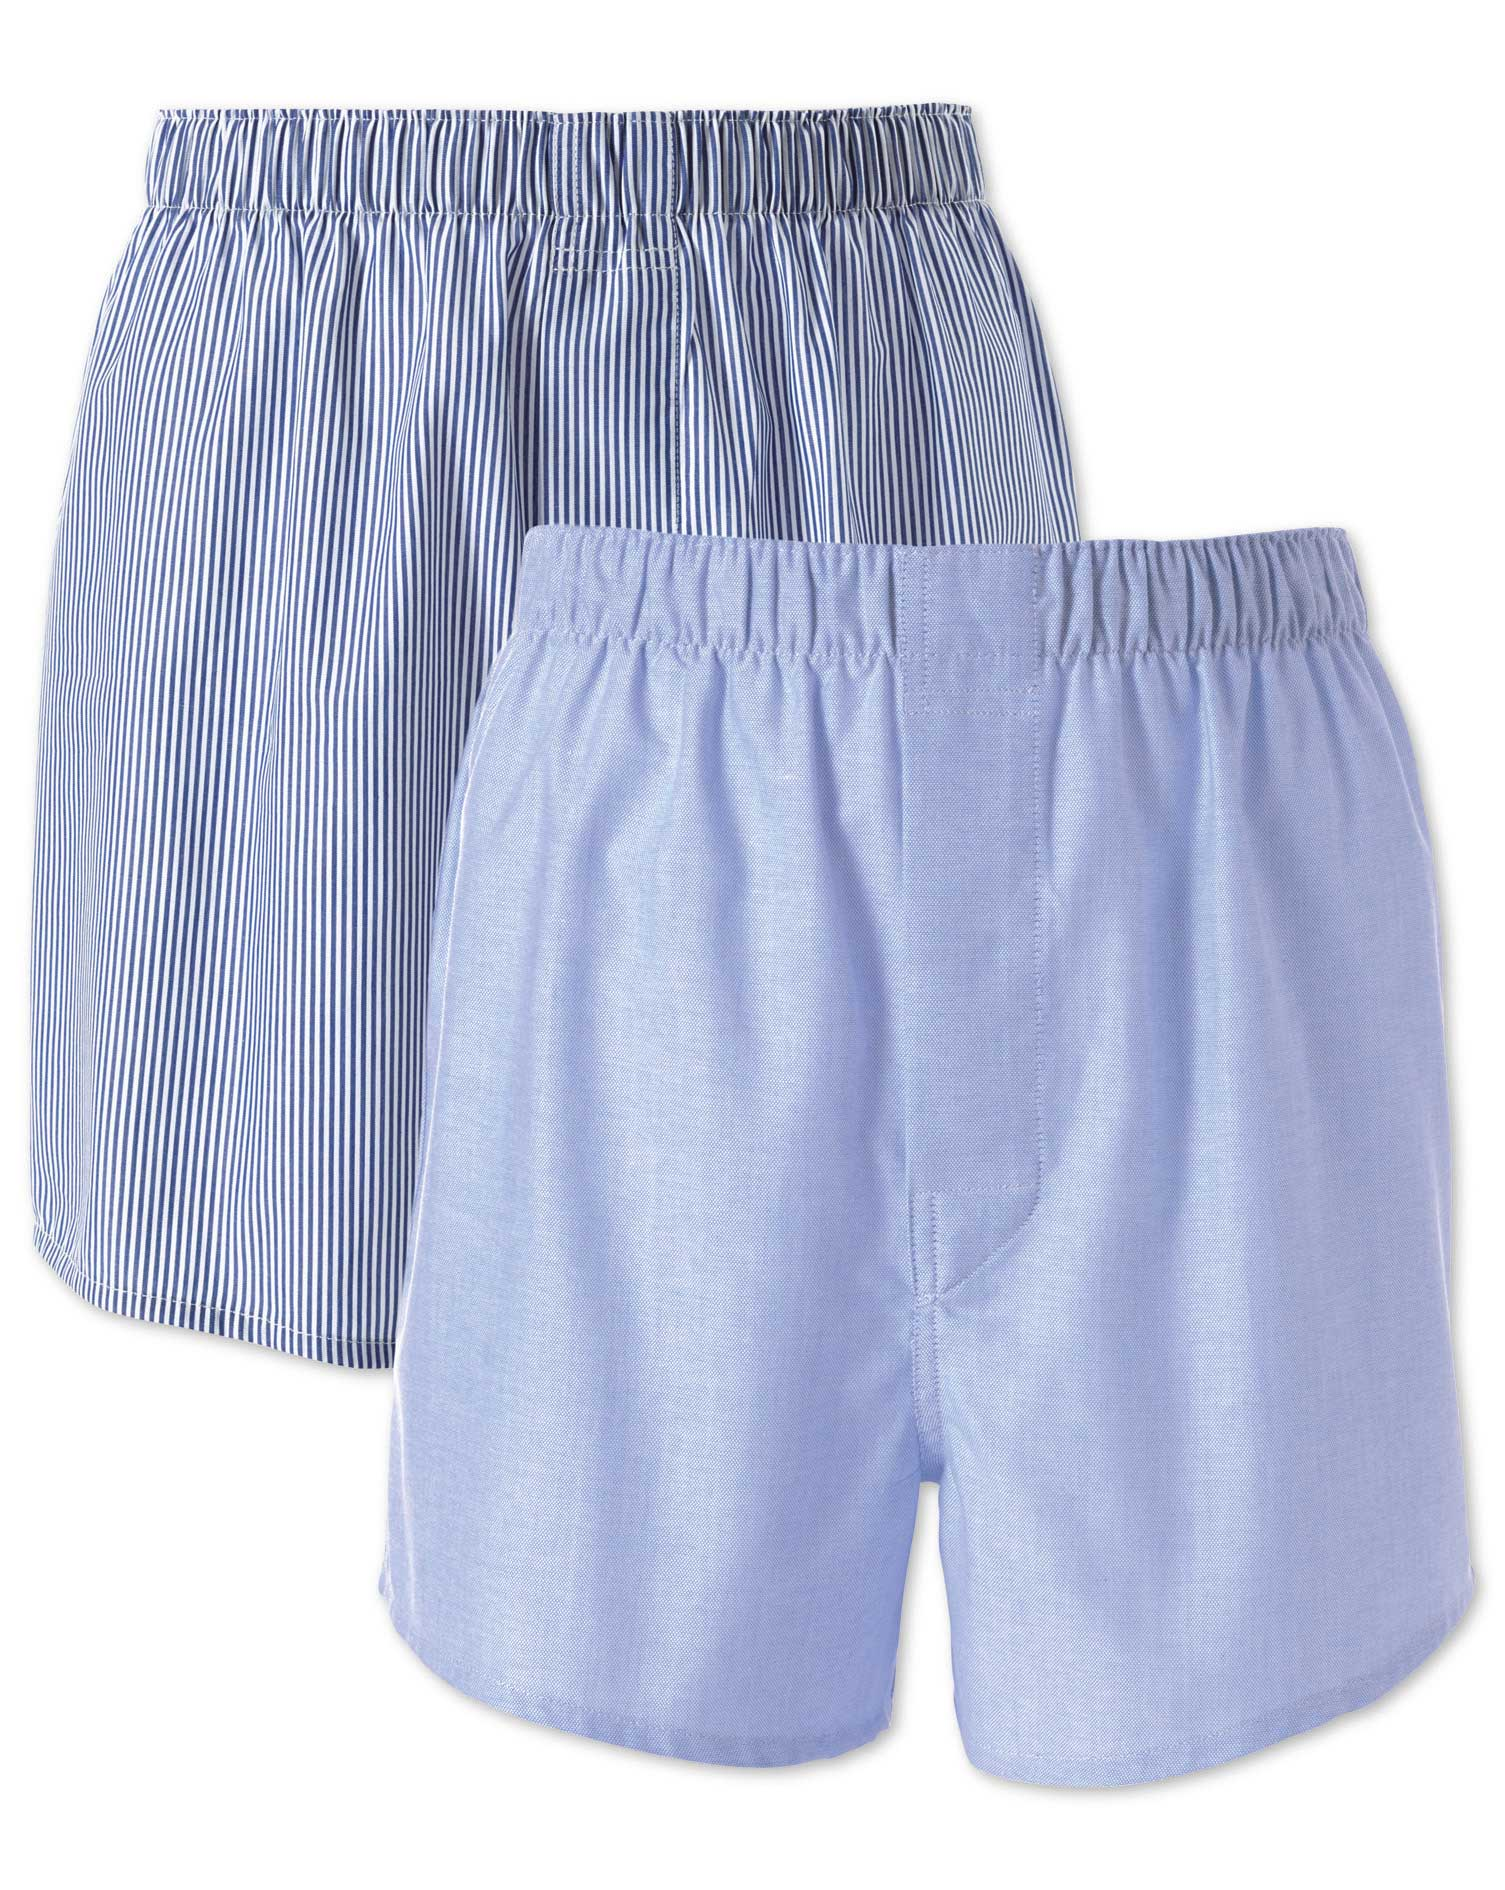 Sky 2 Pack Boxers Size XL by Charles Tyrwhitt